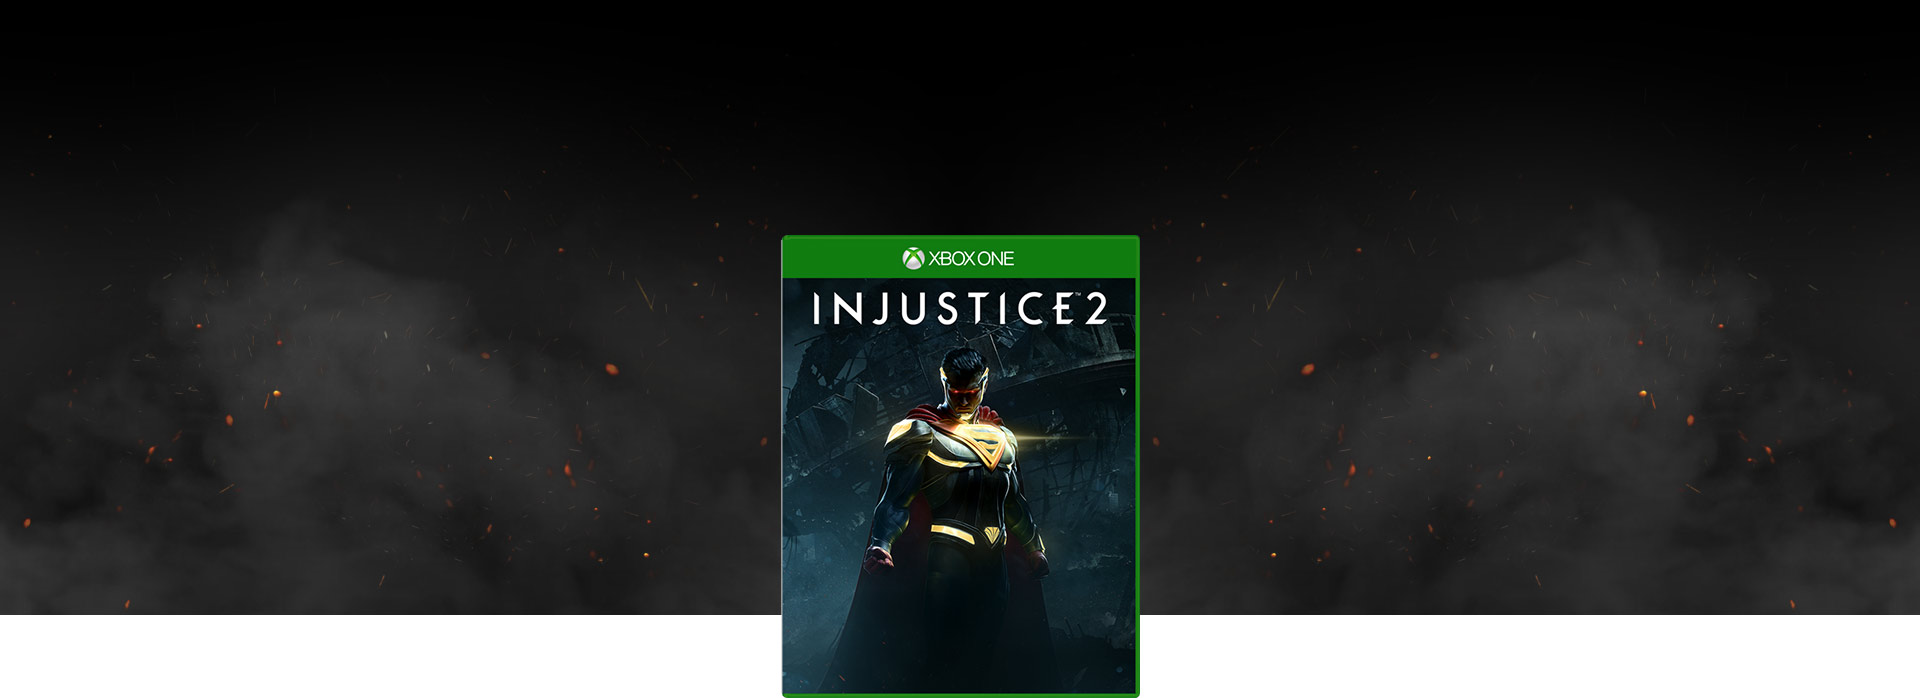 Boxshot of Injustice 2, on a dark smokey background with red embers